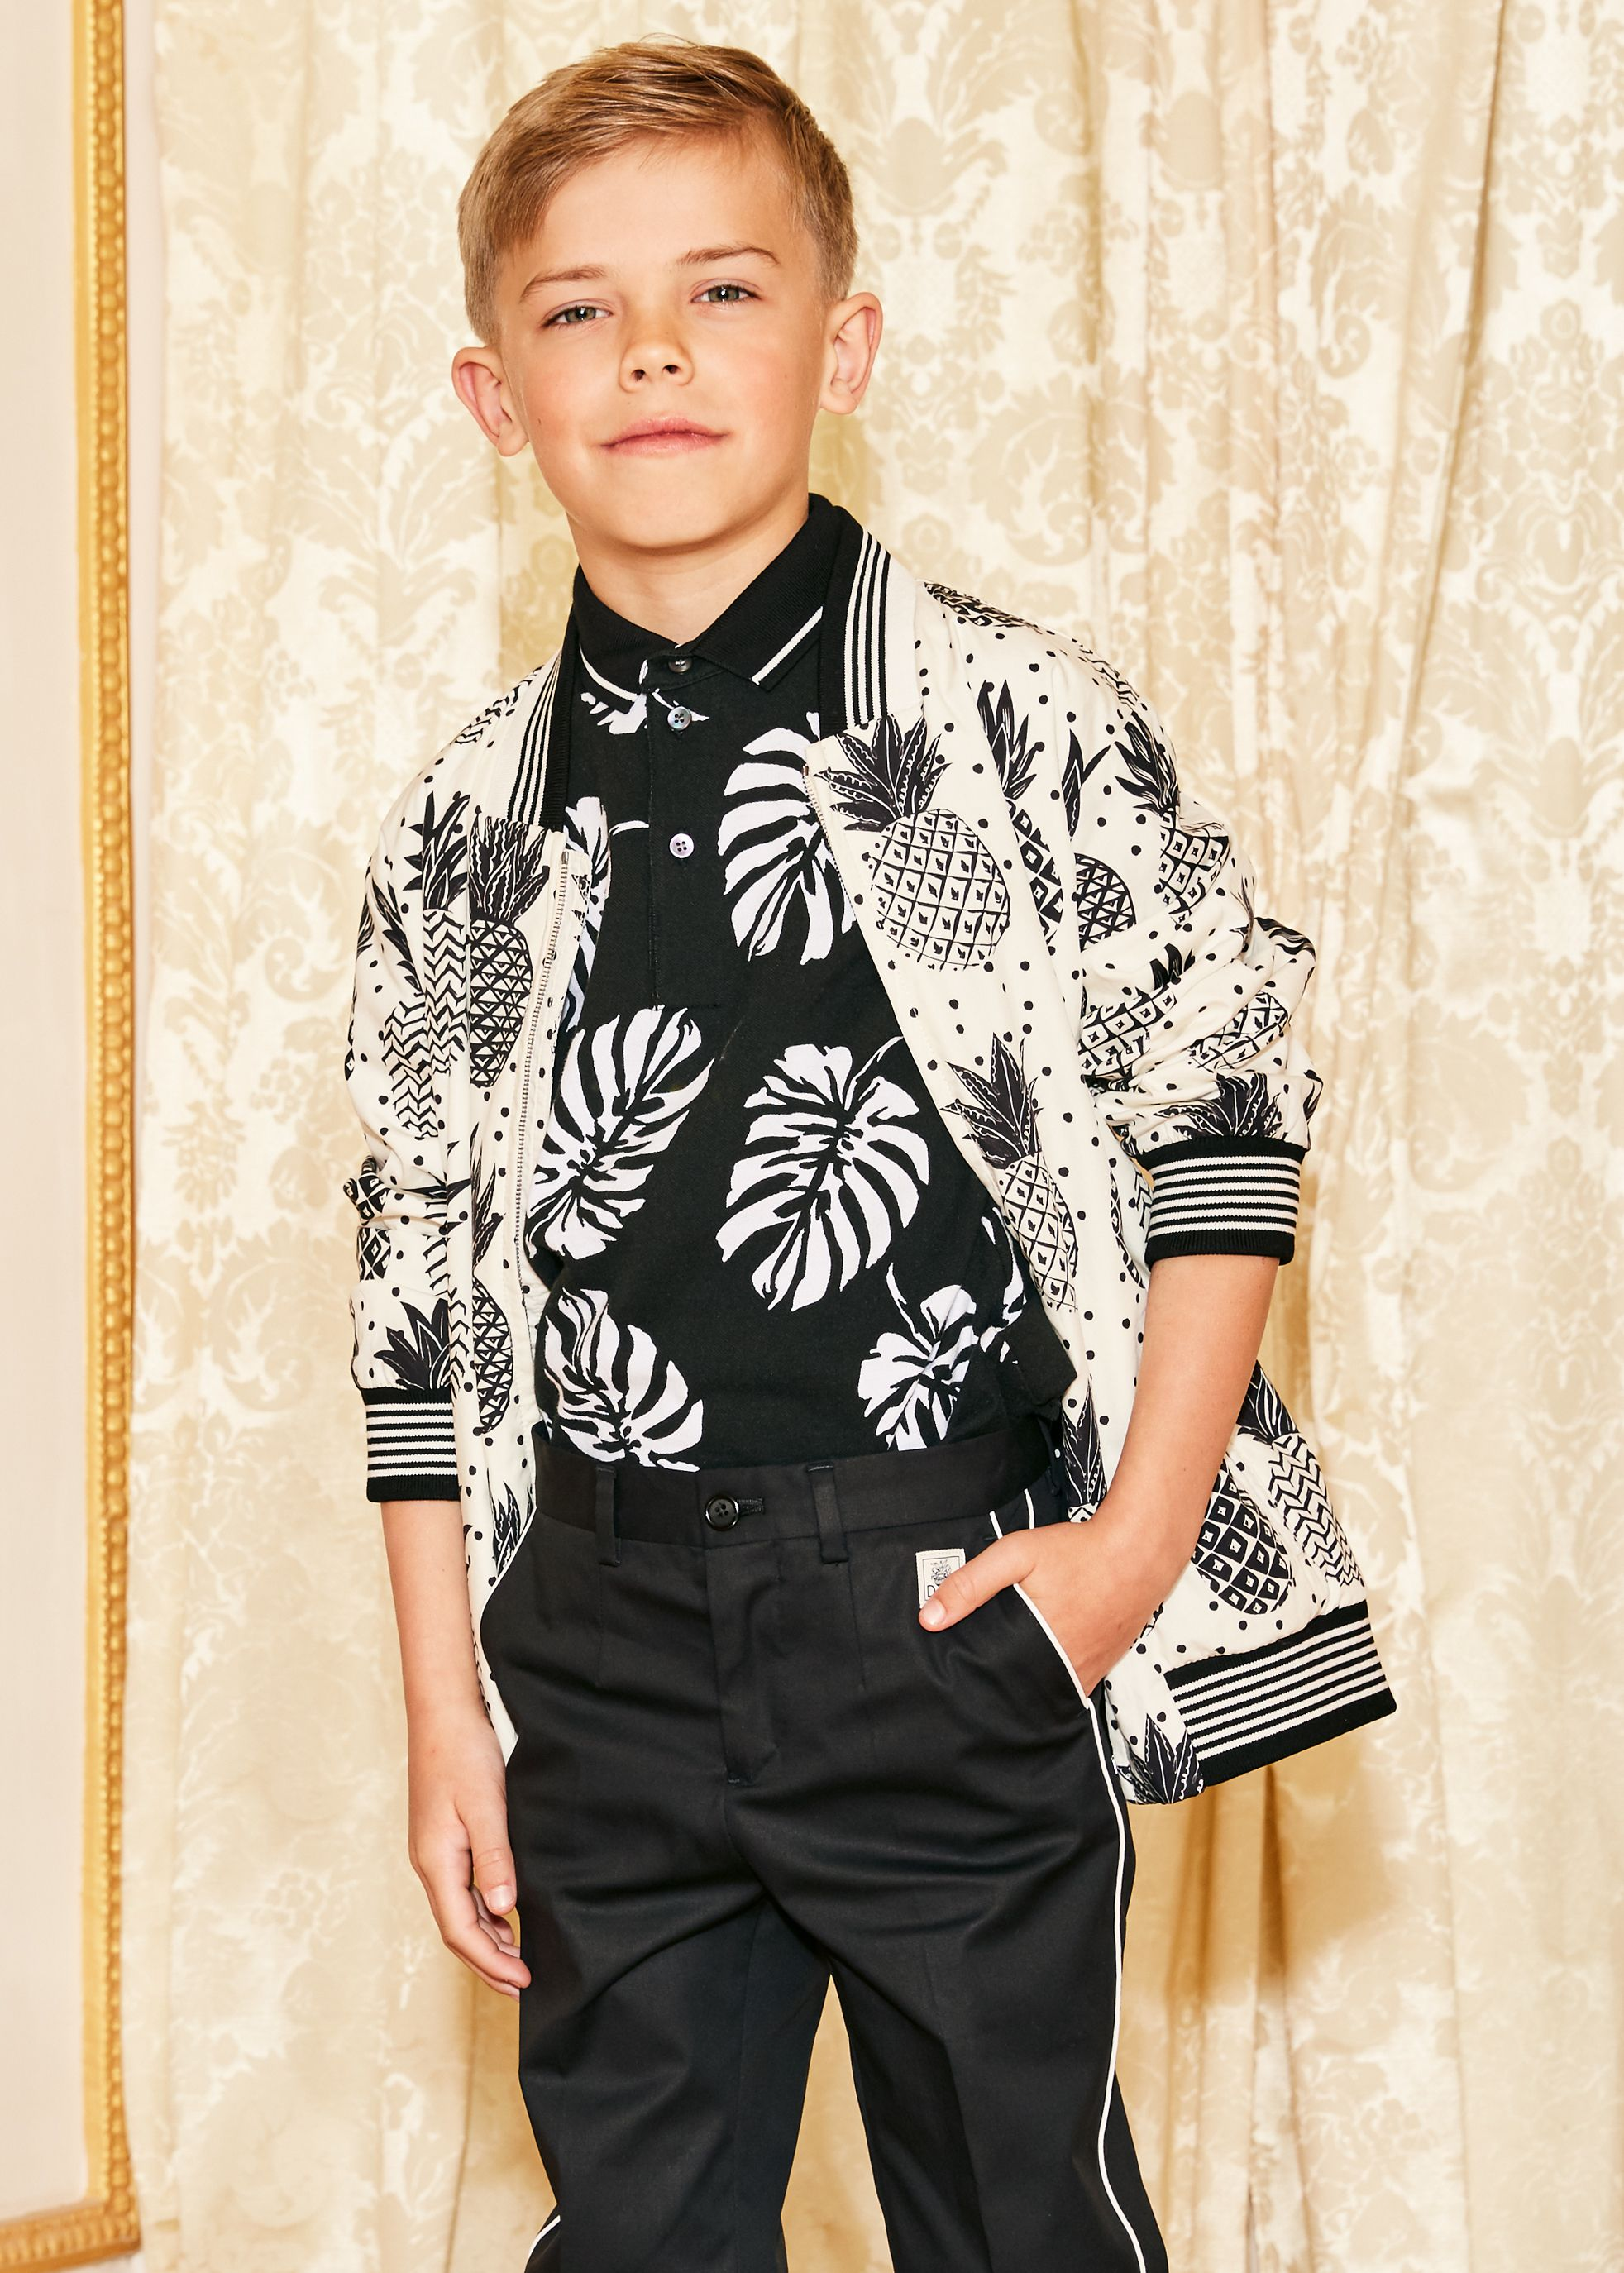 Celebrate Eid al-Fitr in style with our selection of luxury clothing for  boys, a0860a2ab23